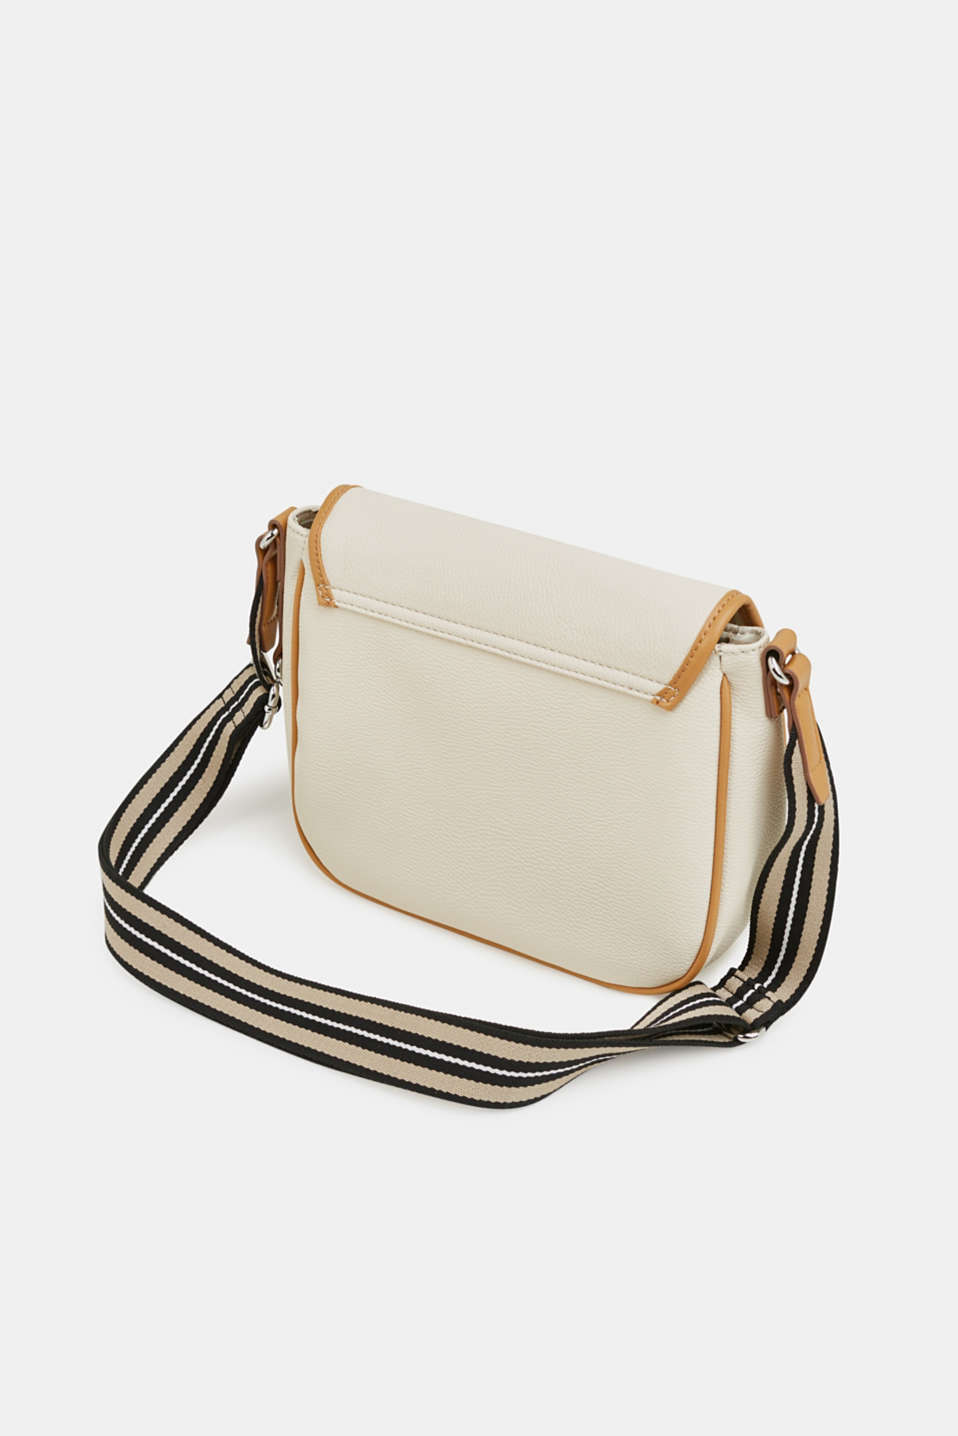 Susie T. shoulder bag, CREAM BEIGE, detail image number 5